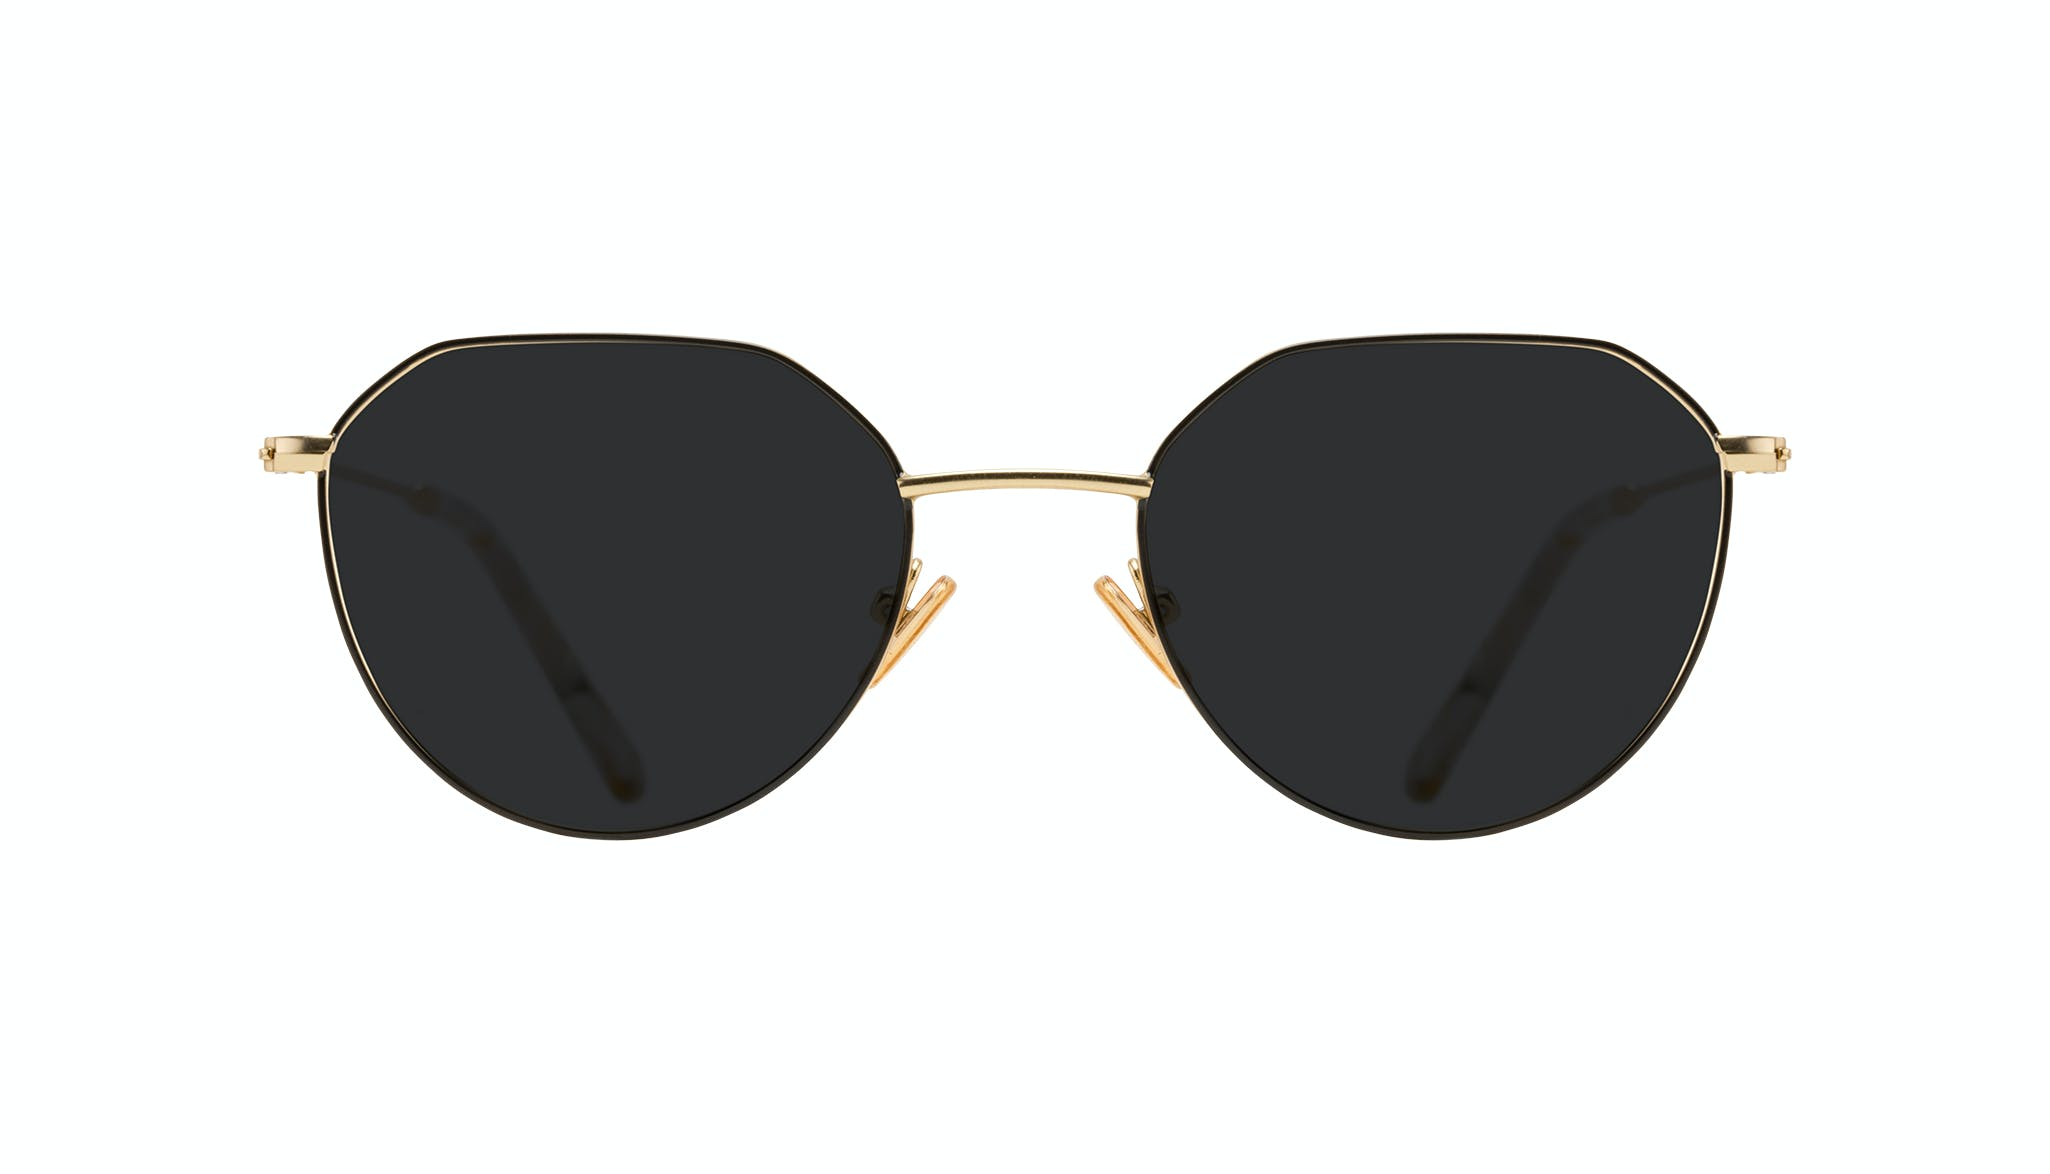 Affordable Fashion Glasses Round Sunglasses Women Prism Deep Gold Front